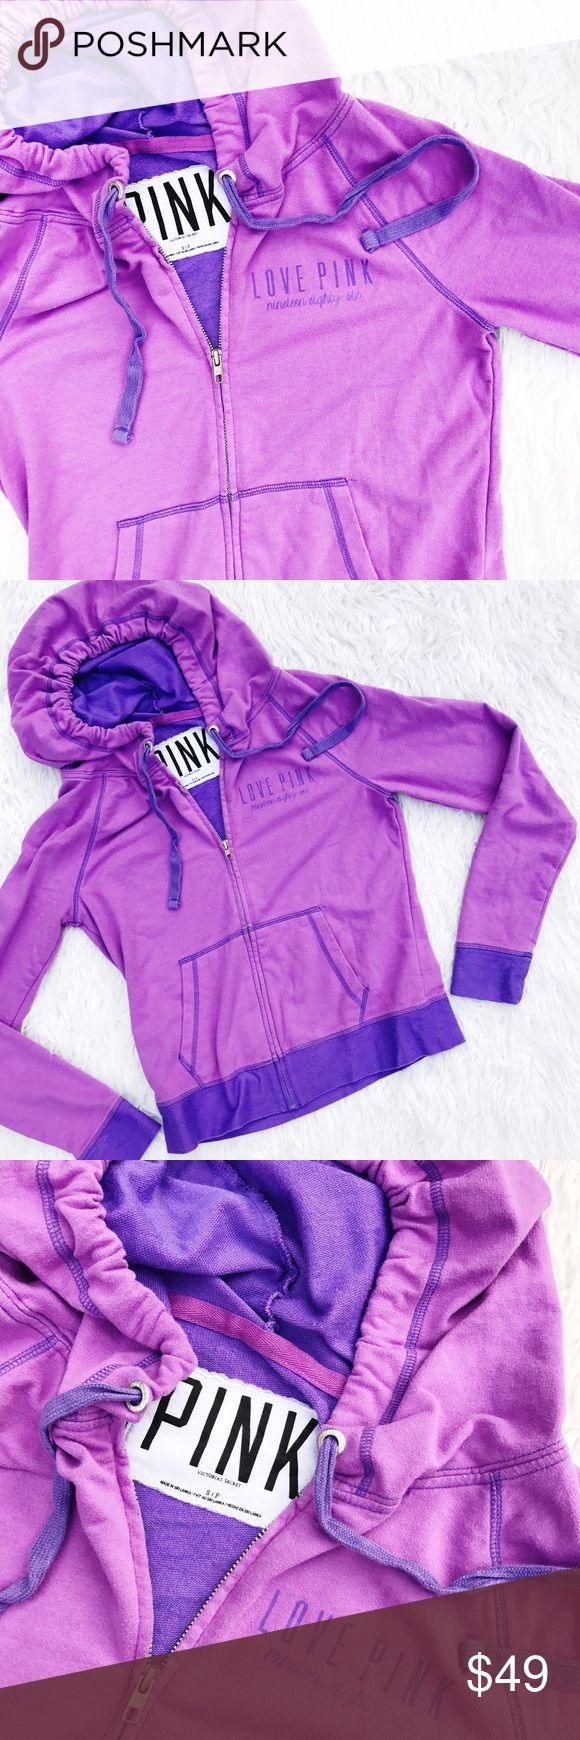 • PINK • Purple Hoodie Good condition! Offers welcome. PINK Victoria's Secret Sweaters